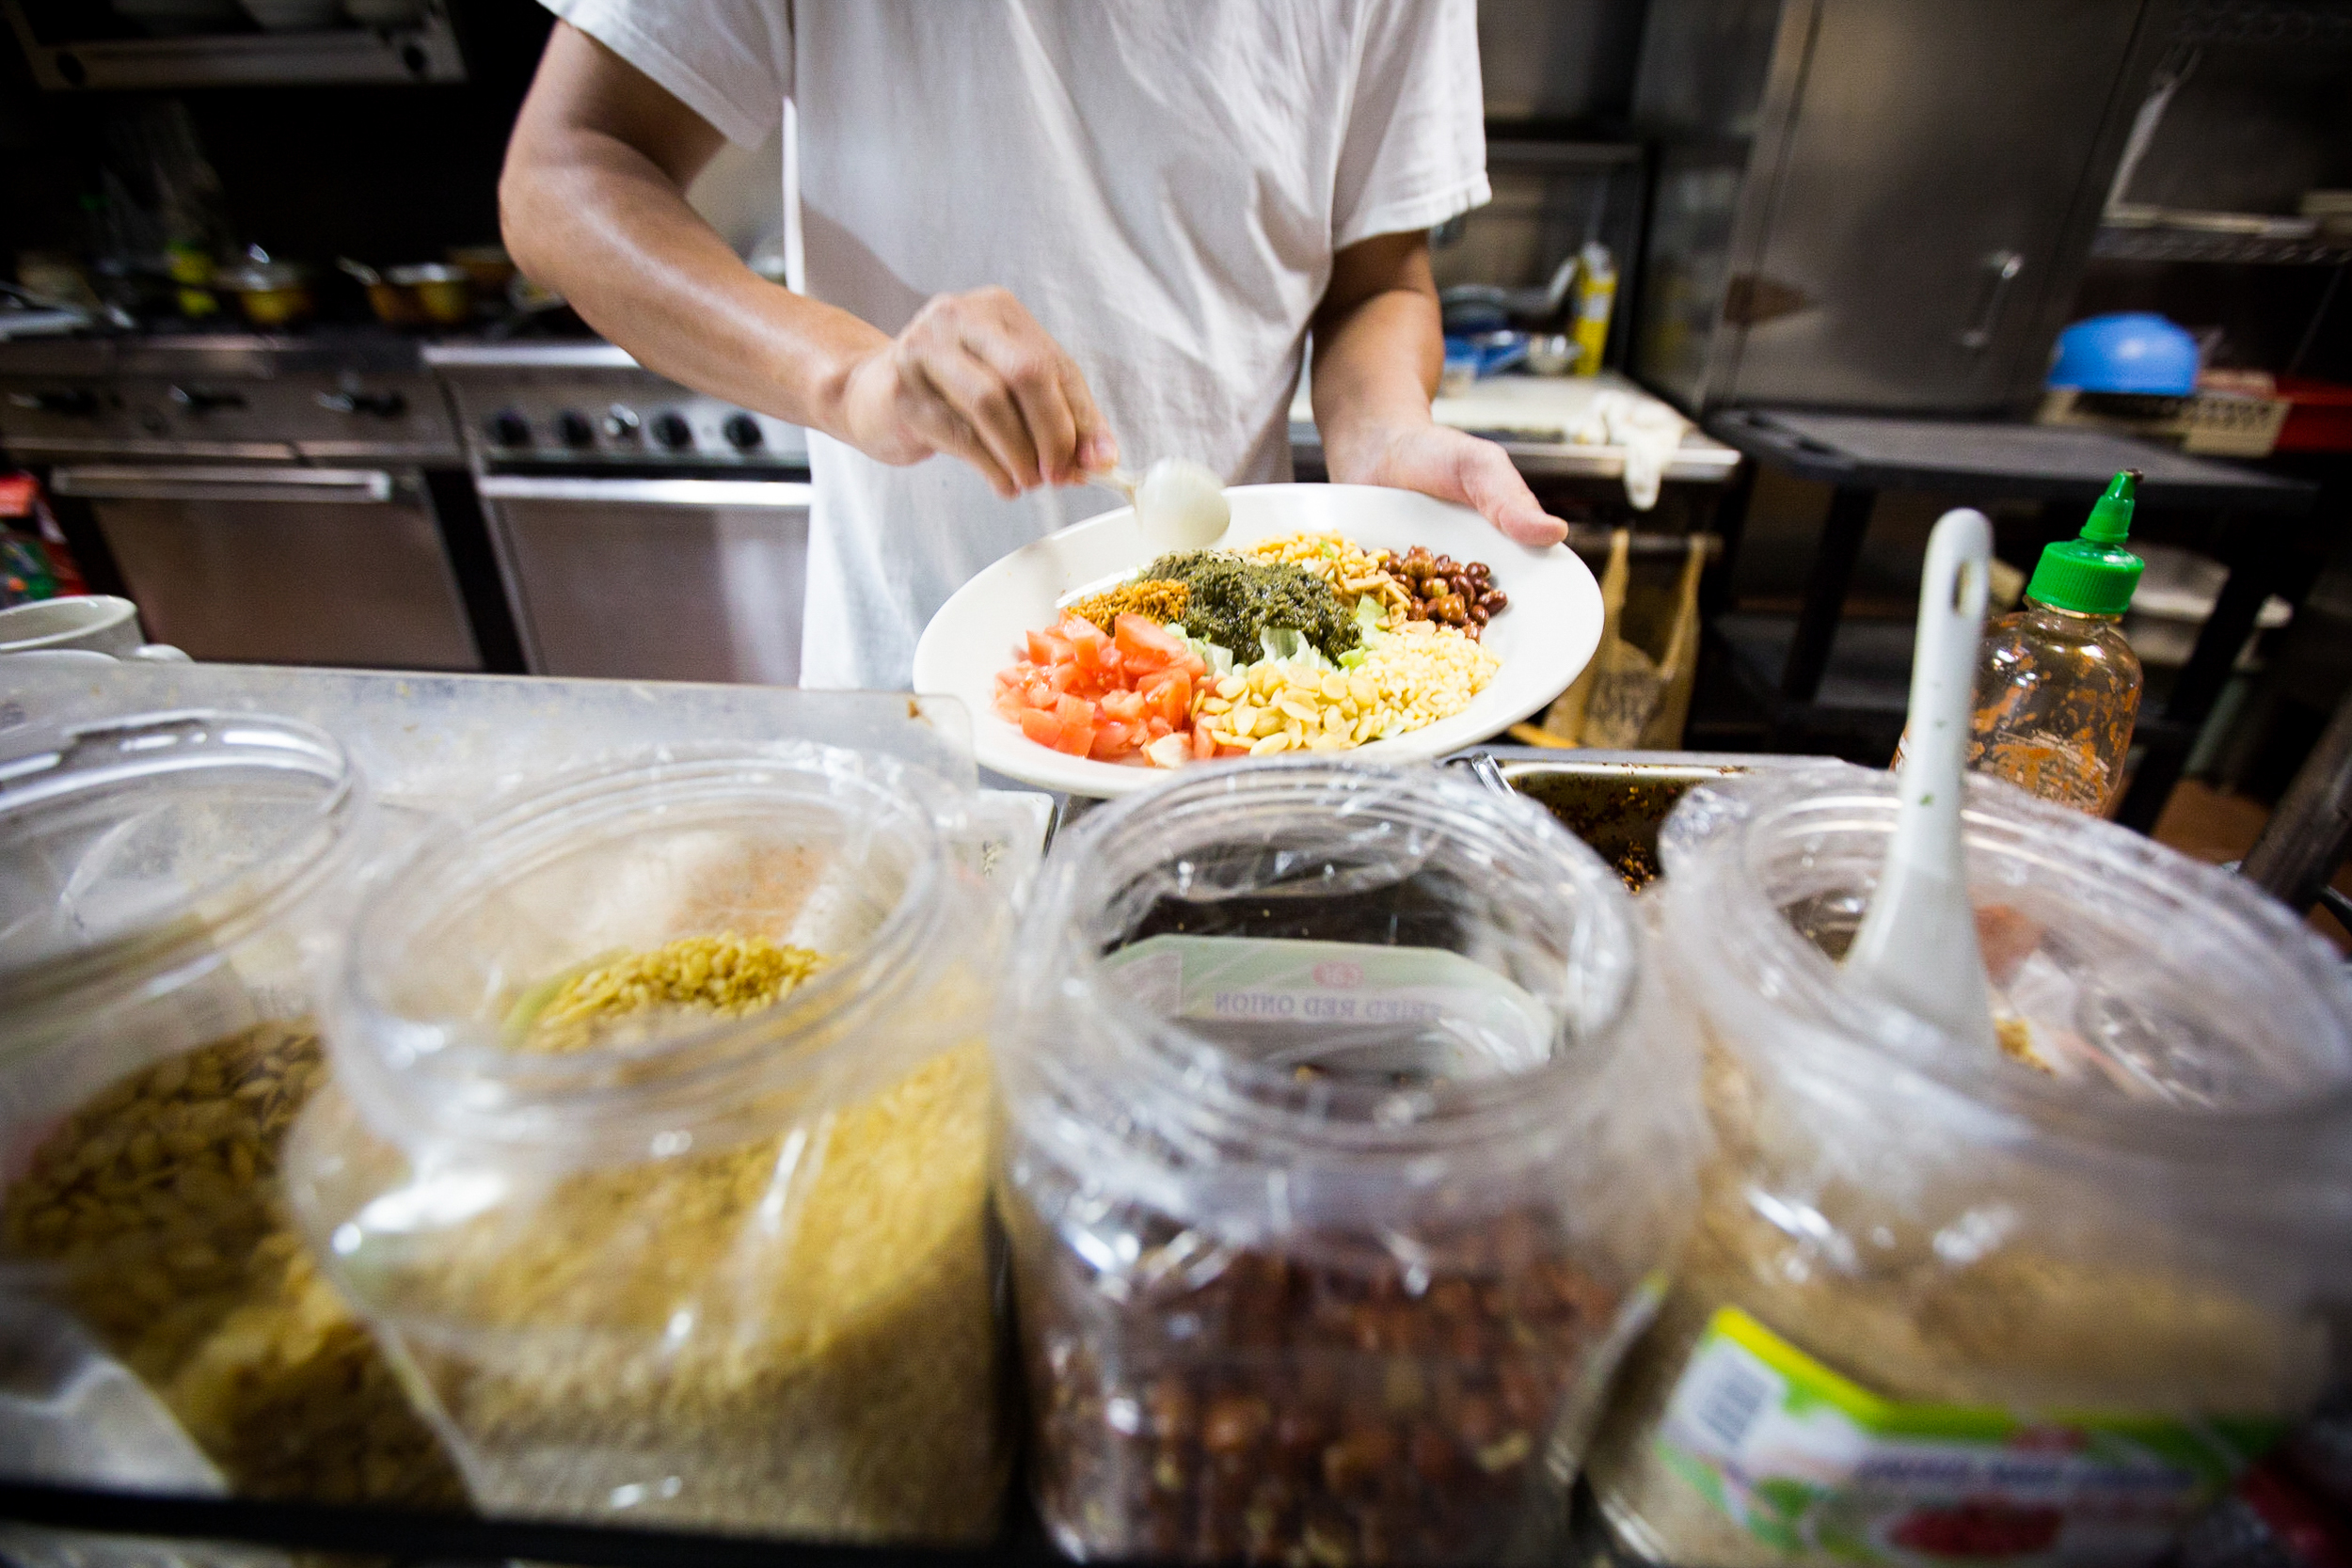 """Sai Kyaw, the owner and chef of Yoma restaurant, preparing signature dish the """"Tea Salad"""" in the kitchen of Yoma in Allston, Mass. Photo by Ann Wang"""